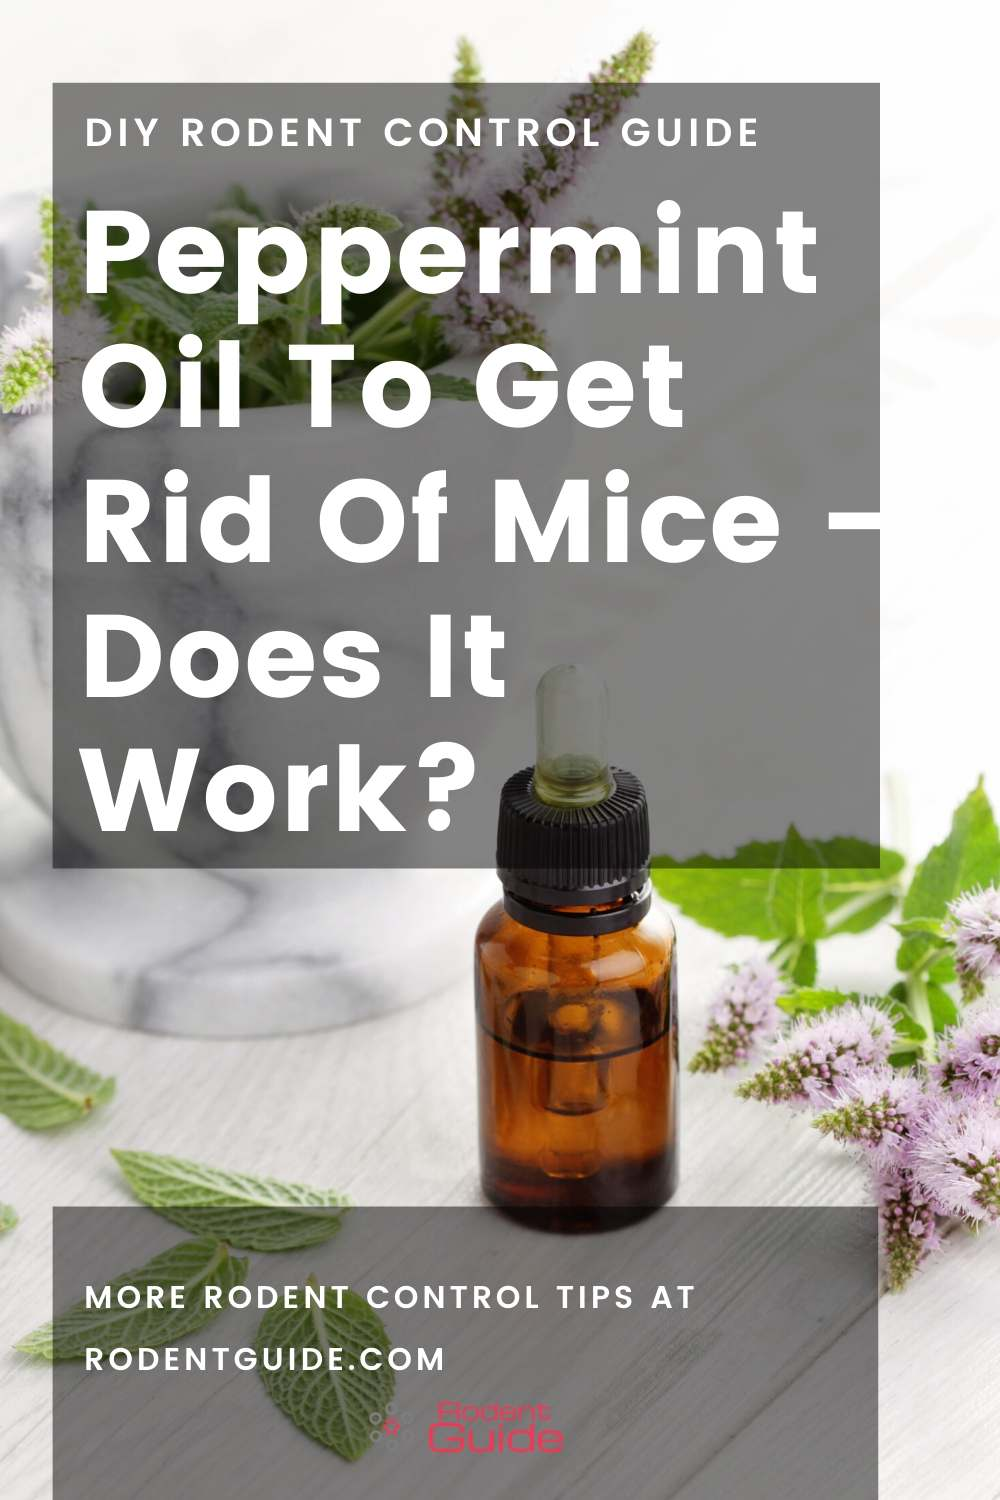 Peppermint Oil To Get Rid Of Mice - Does It Work_